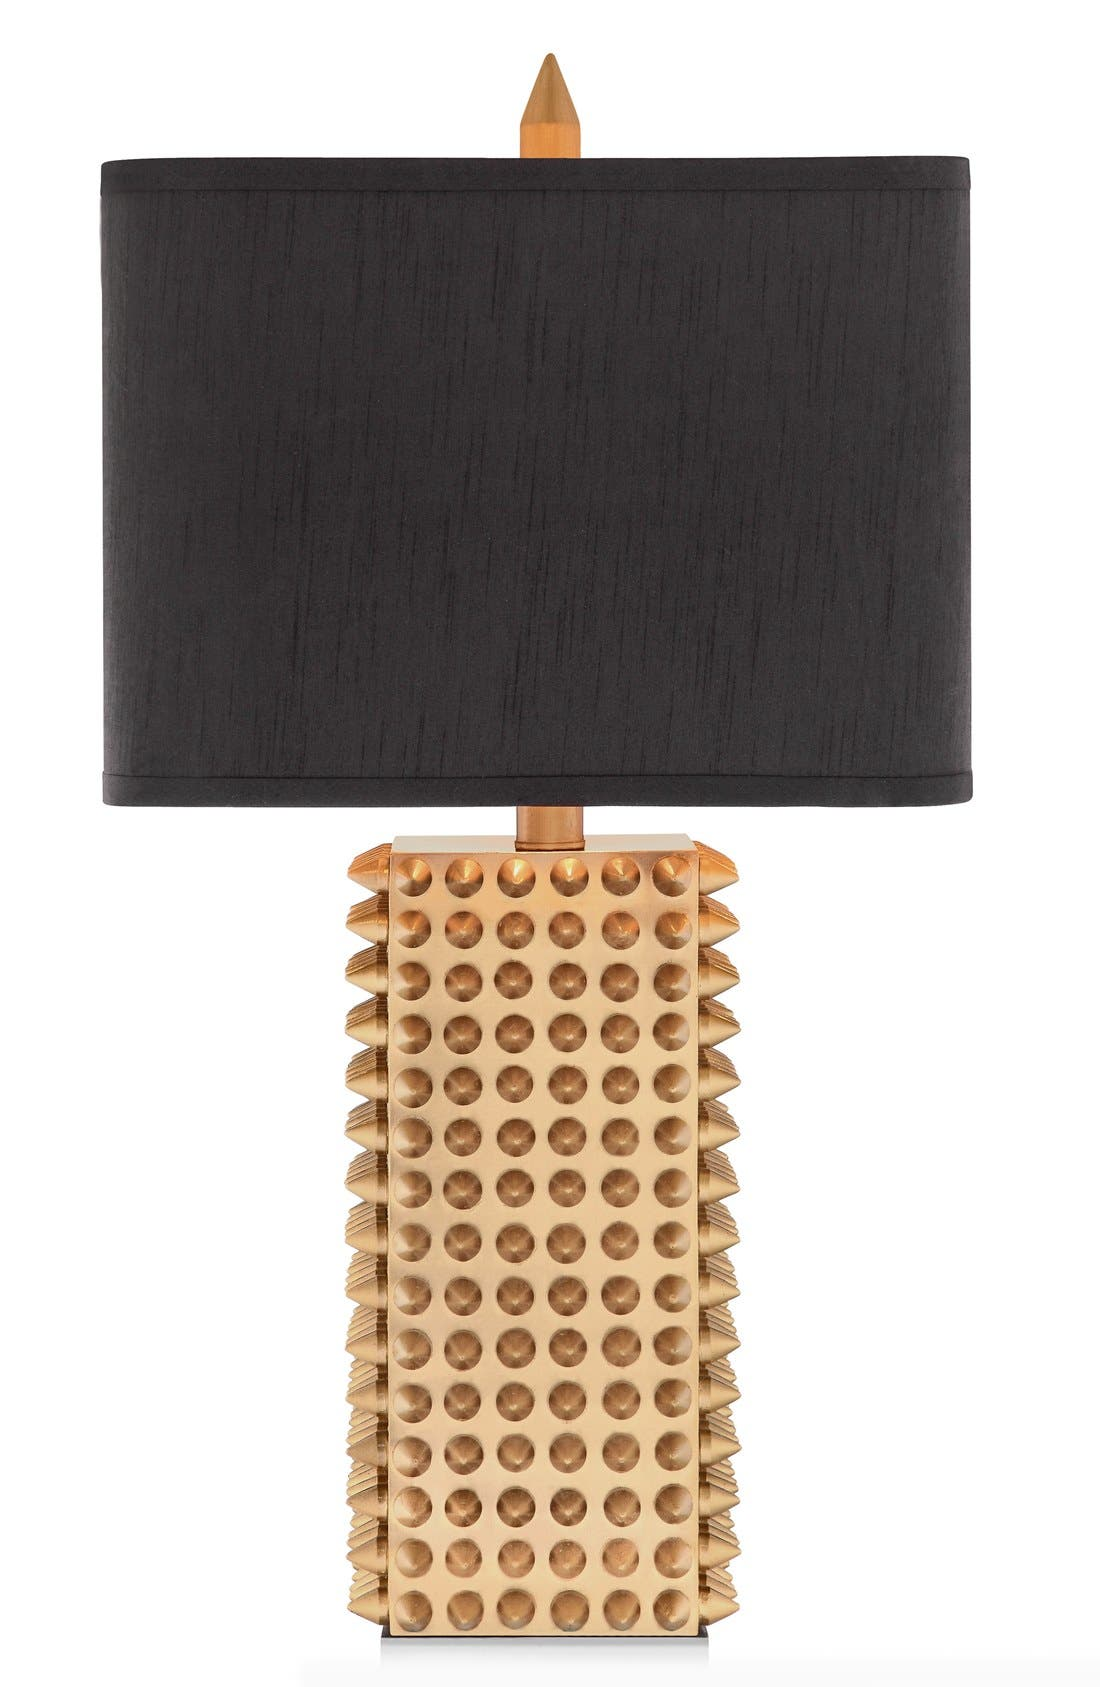 Goldtone Spiked Square Table Lamp,                             Main thumbnail 1, color,                             Gold